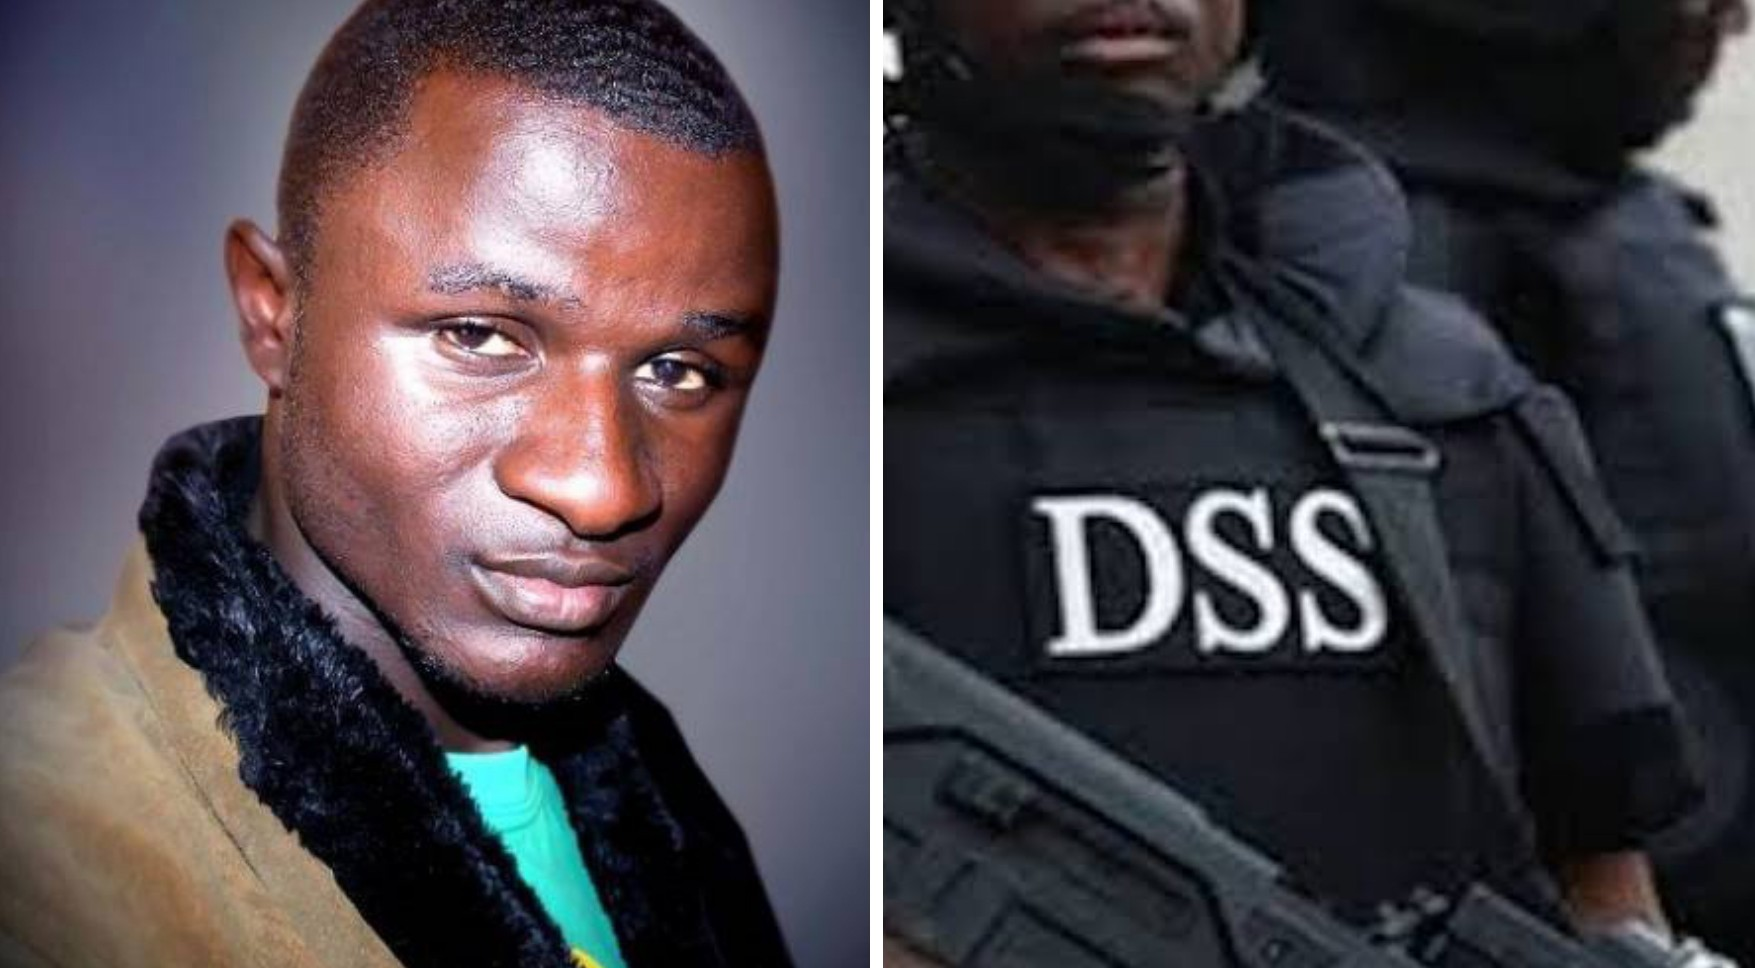 DSS summon Journalist, Masara Kim over report exposing potential attacks by Herdsmen in Plateau